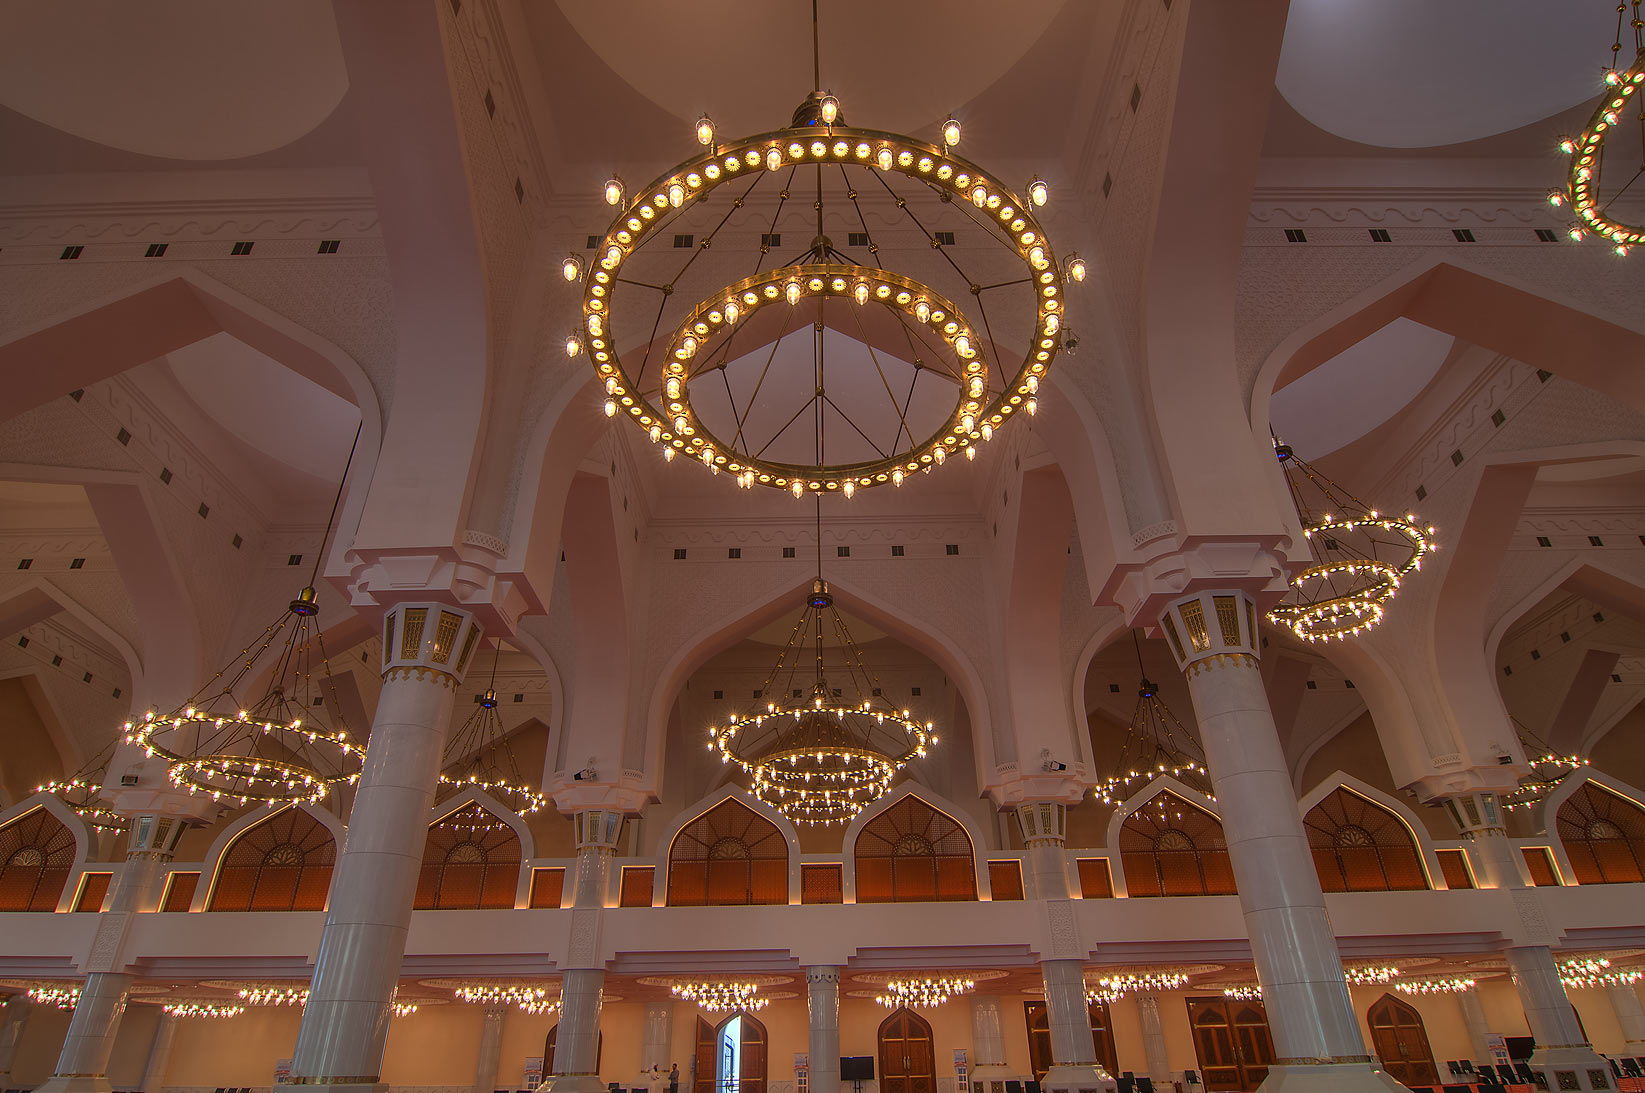 Chandeliers inside State Mosque (Sheikh Muhammad Ibn Abdul Wahhab Mosque). Doha, Qatar